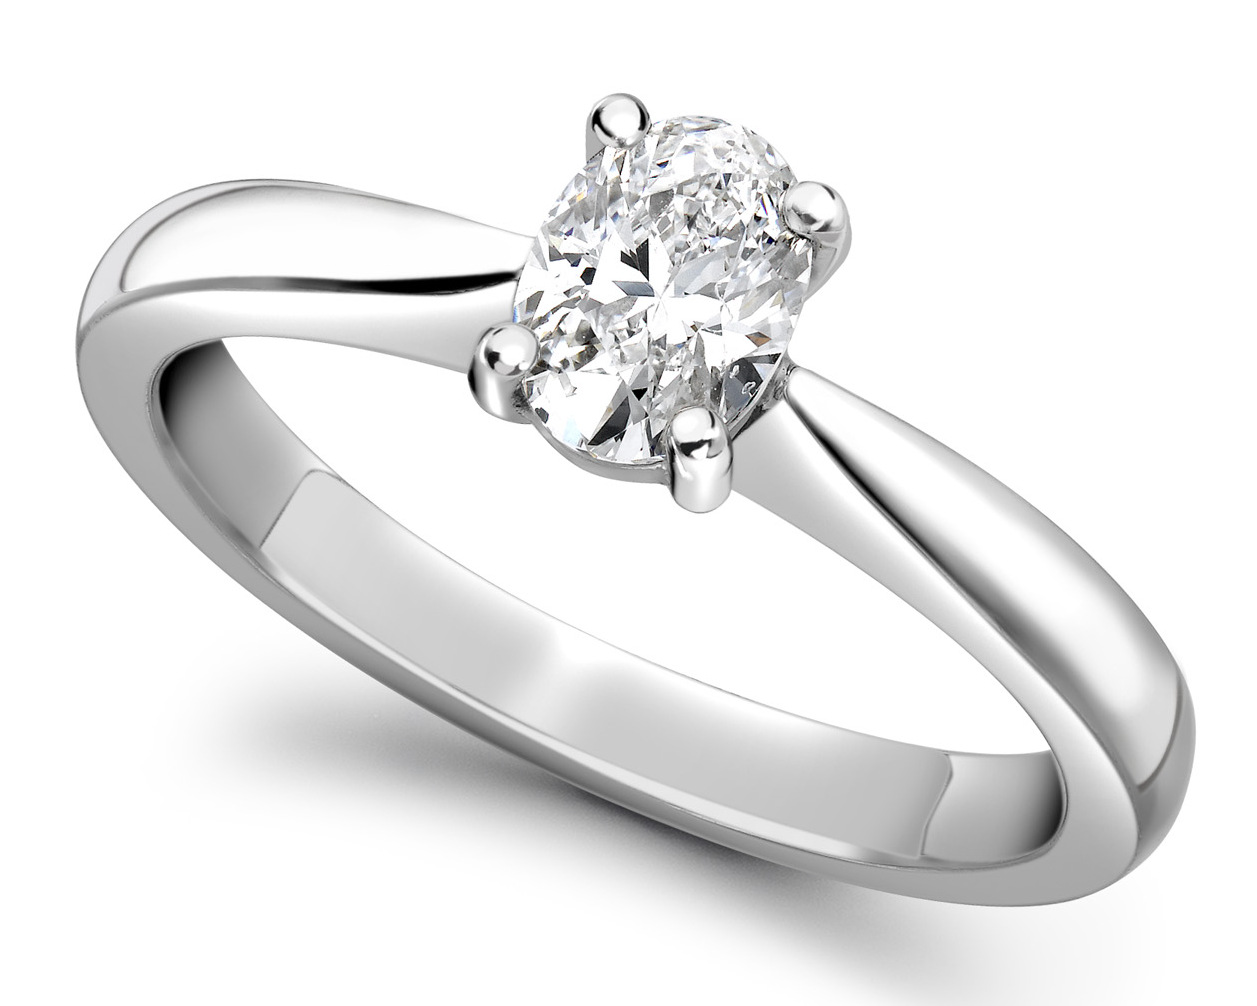 Oval White Gold Diamond Engagement Ring GRC575 Main Image